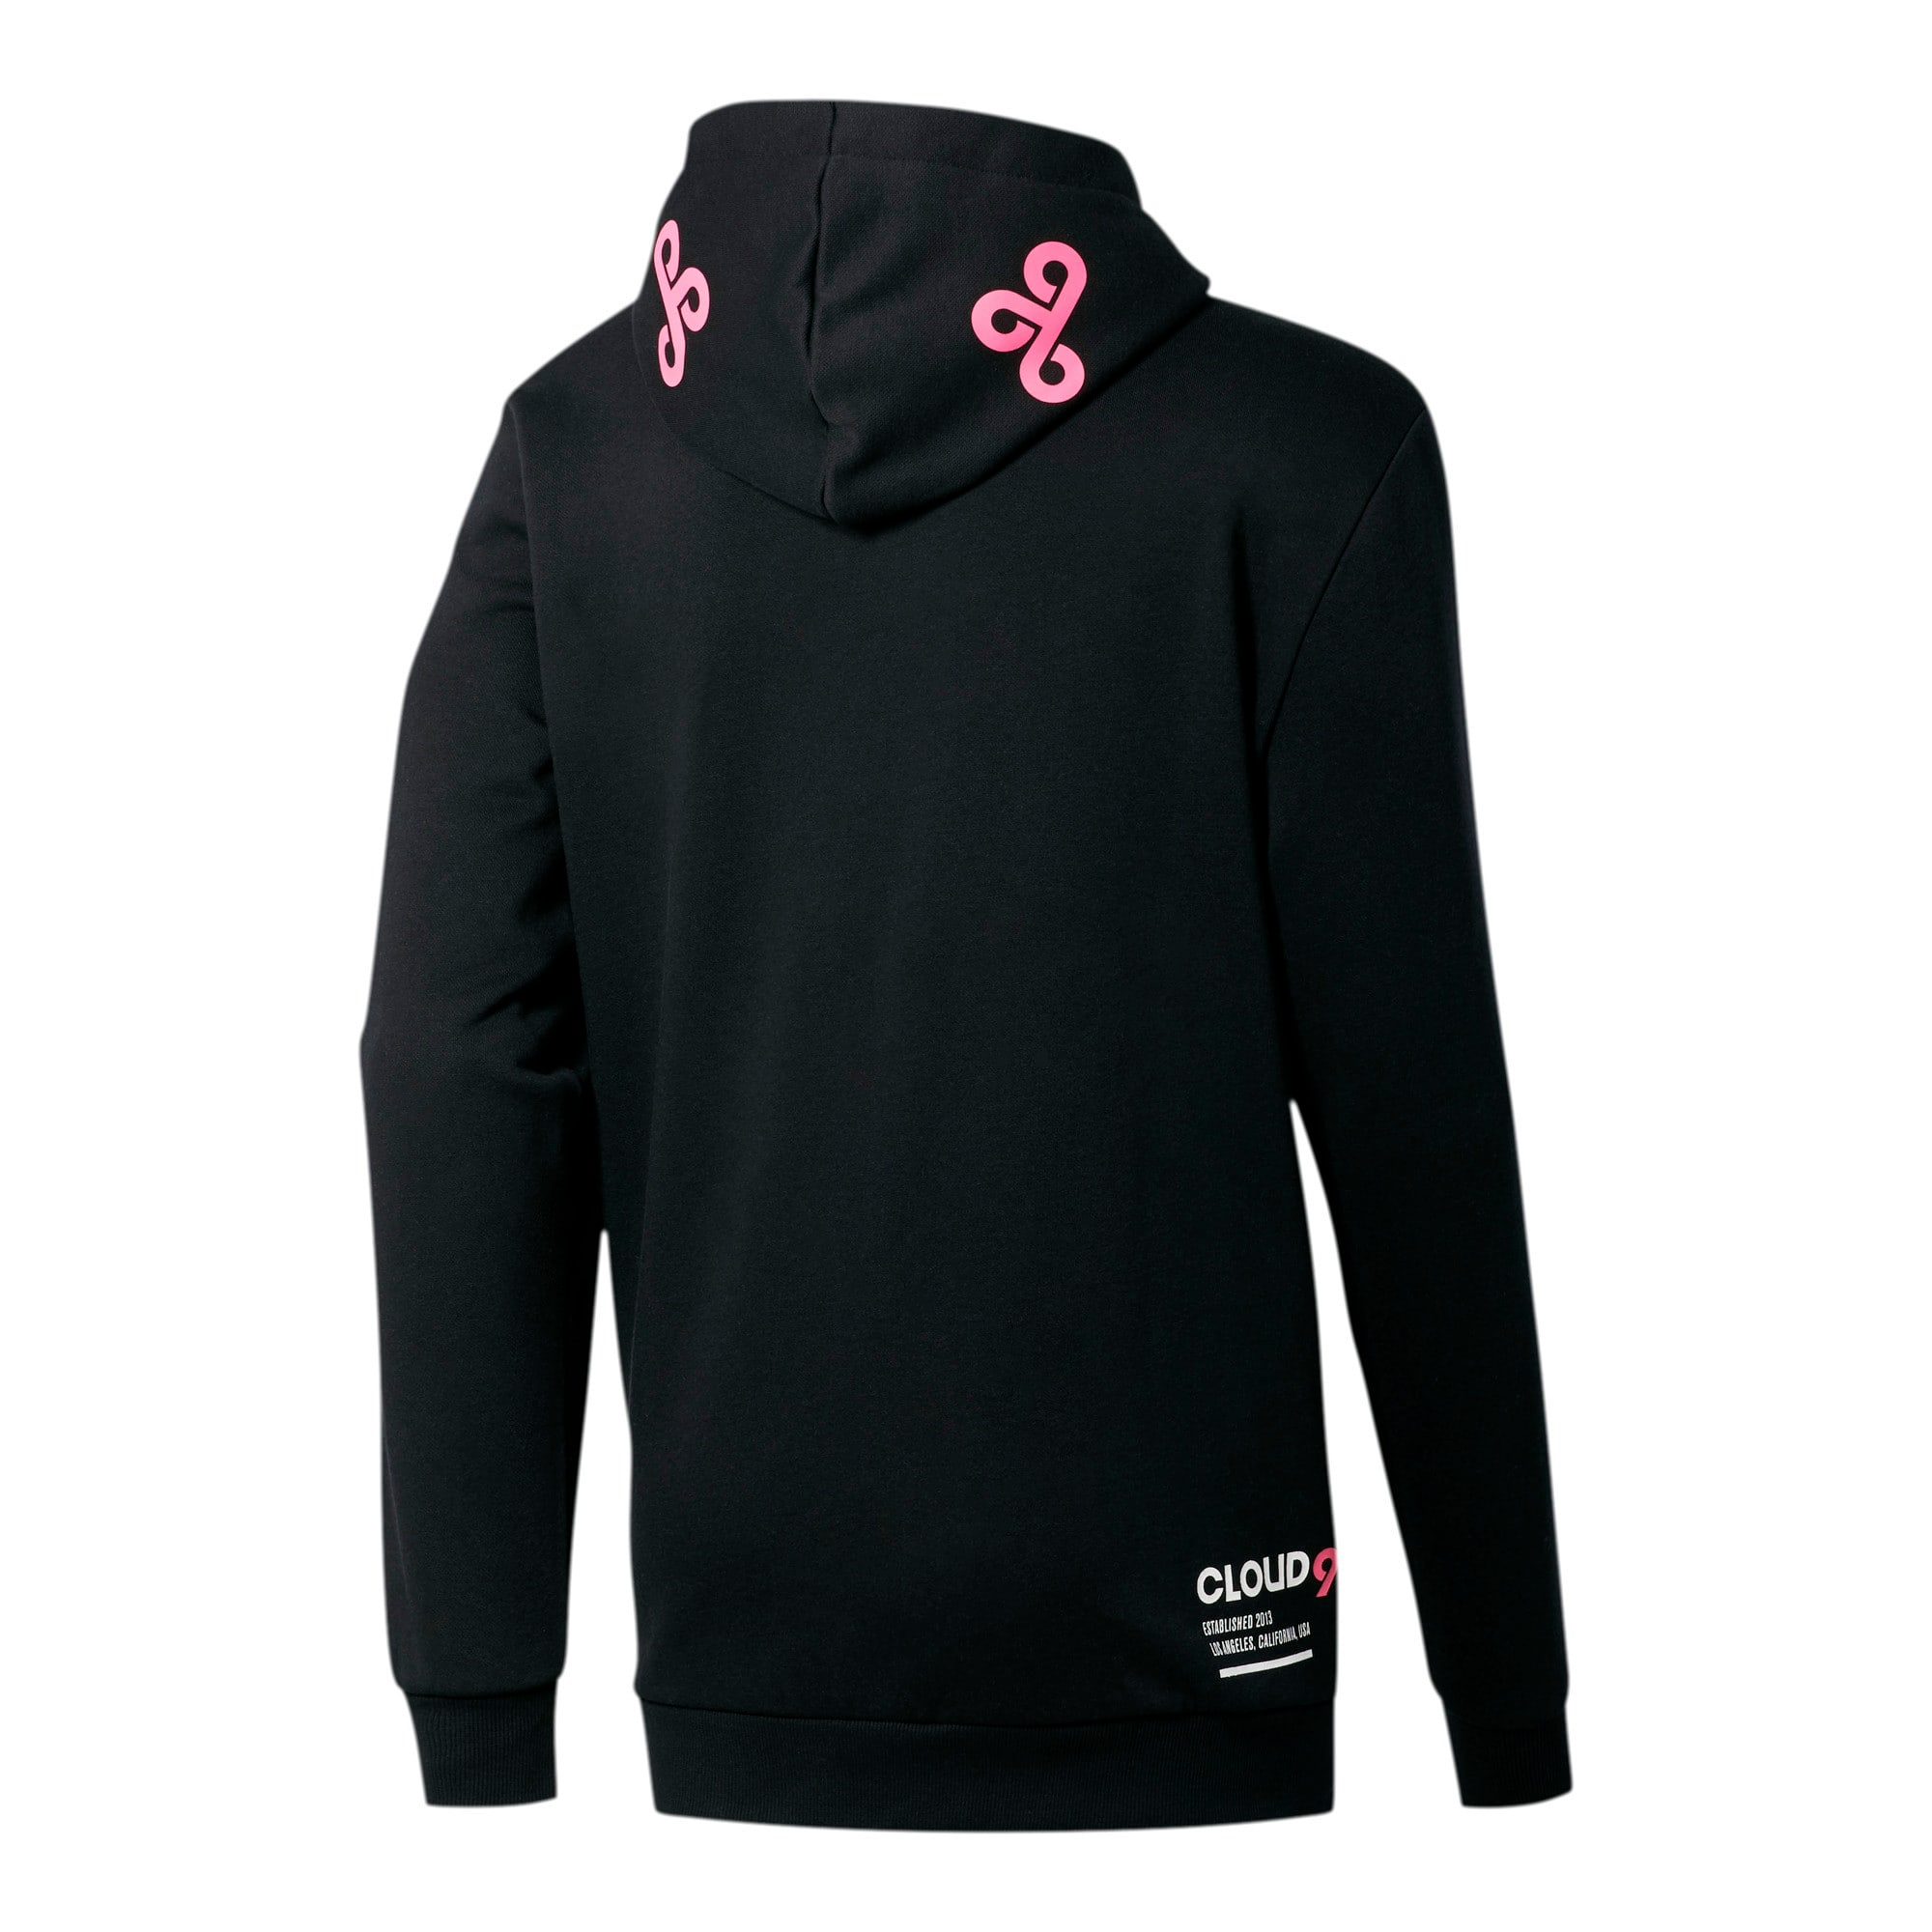 Thumbnail 2 of PUMA x CLOUD9 Simulation Men's Hoodie, Cotton Black-Azalea Pink, medium